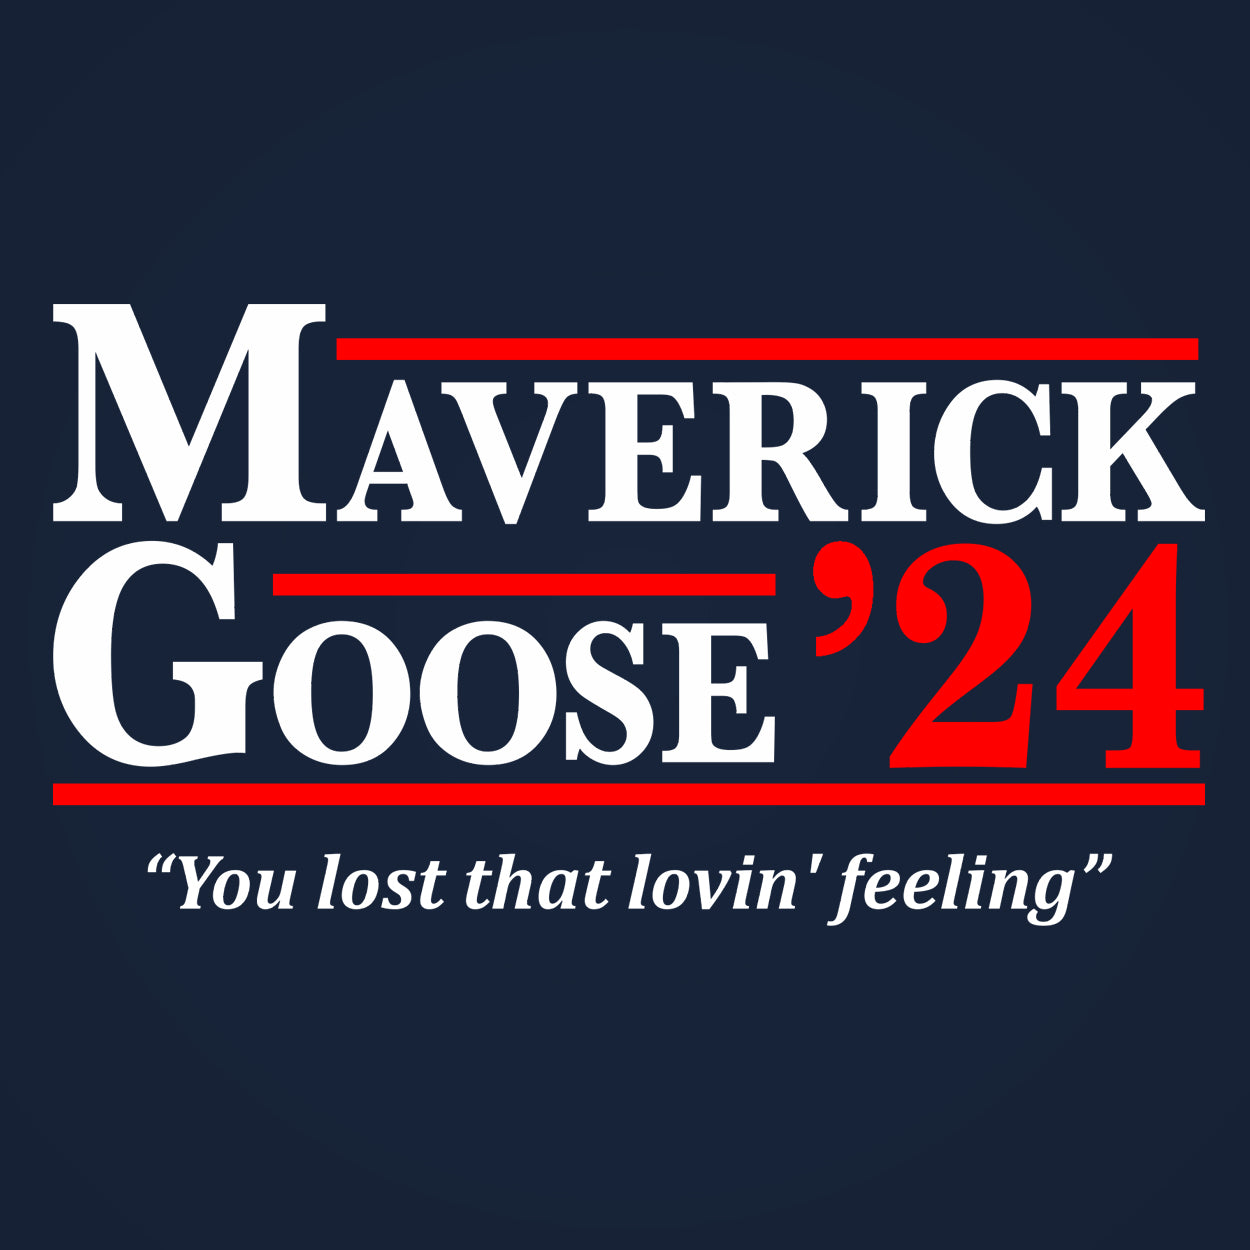 Maverick And Goose 2020 Election